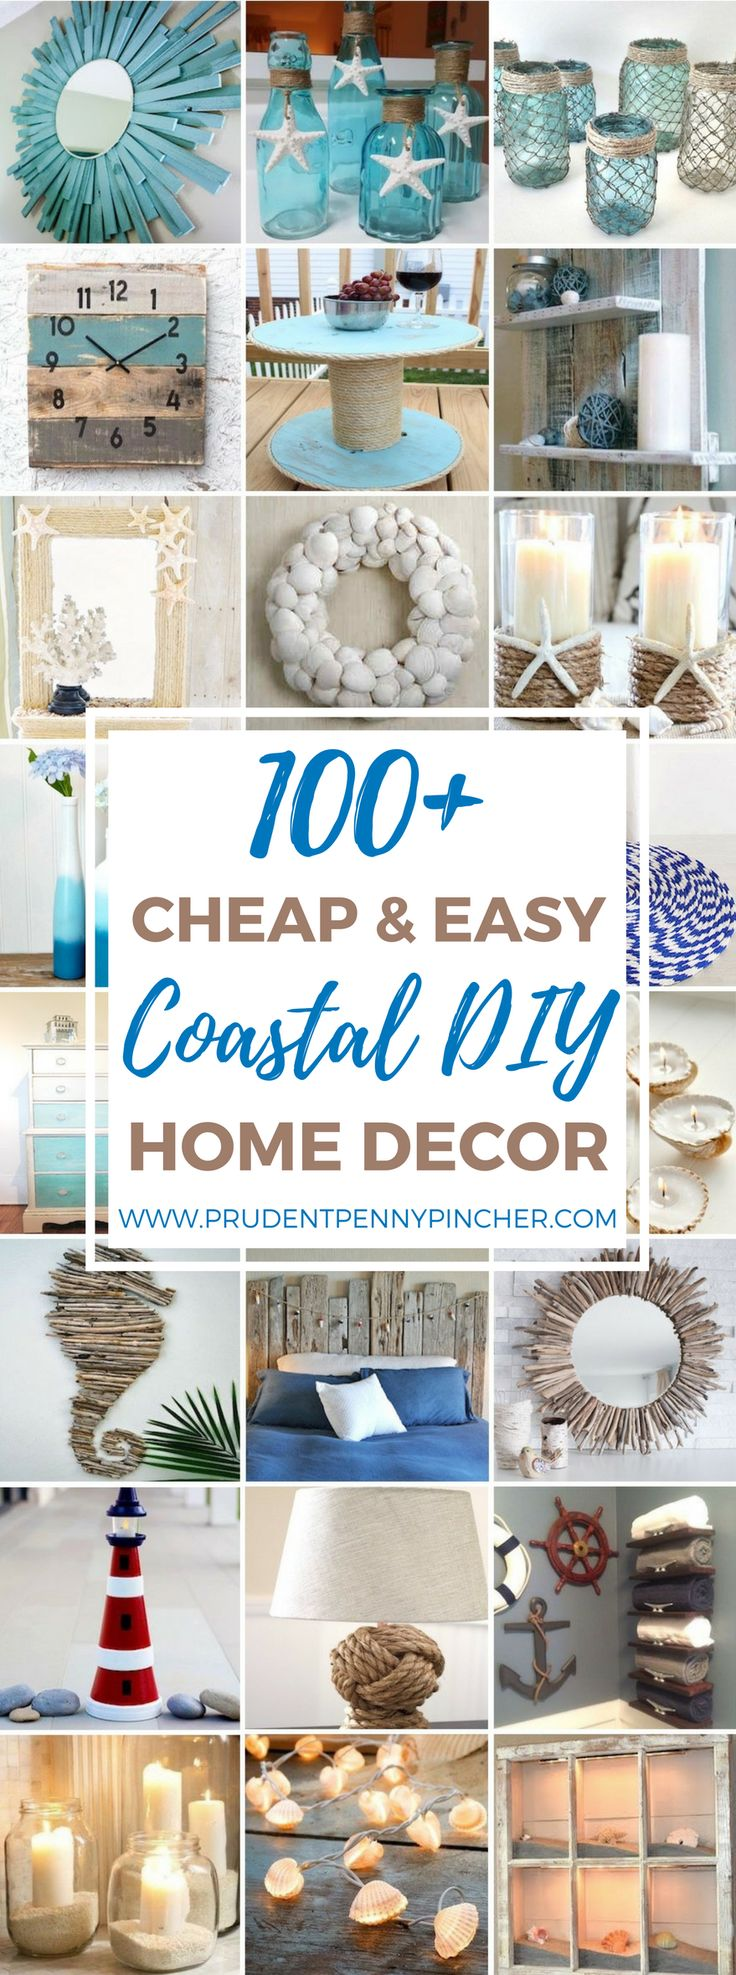 Best 20 Coastal wall decor ideas on Pinterest Hanging photos